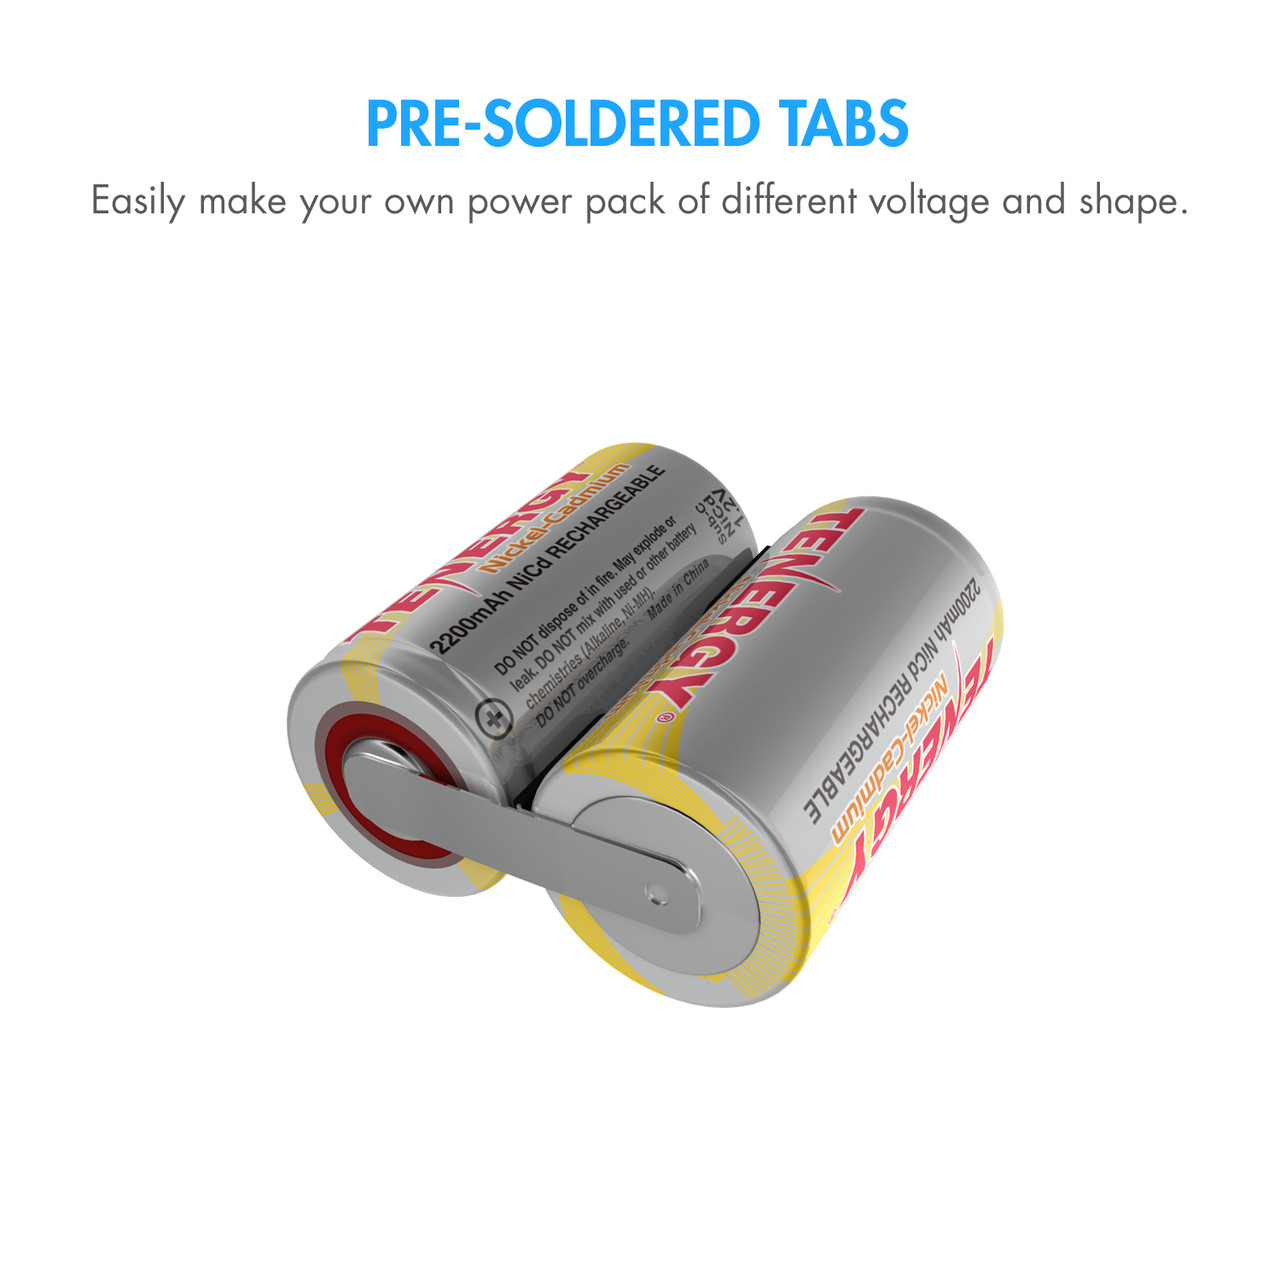 Combo: 15 pcs Tenergy Sub C 2200mAh NiCd Rechargeable Battery for Power Tools (w/ Tabs)